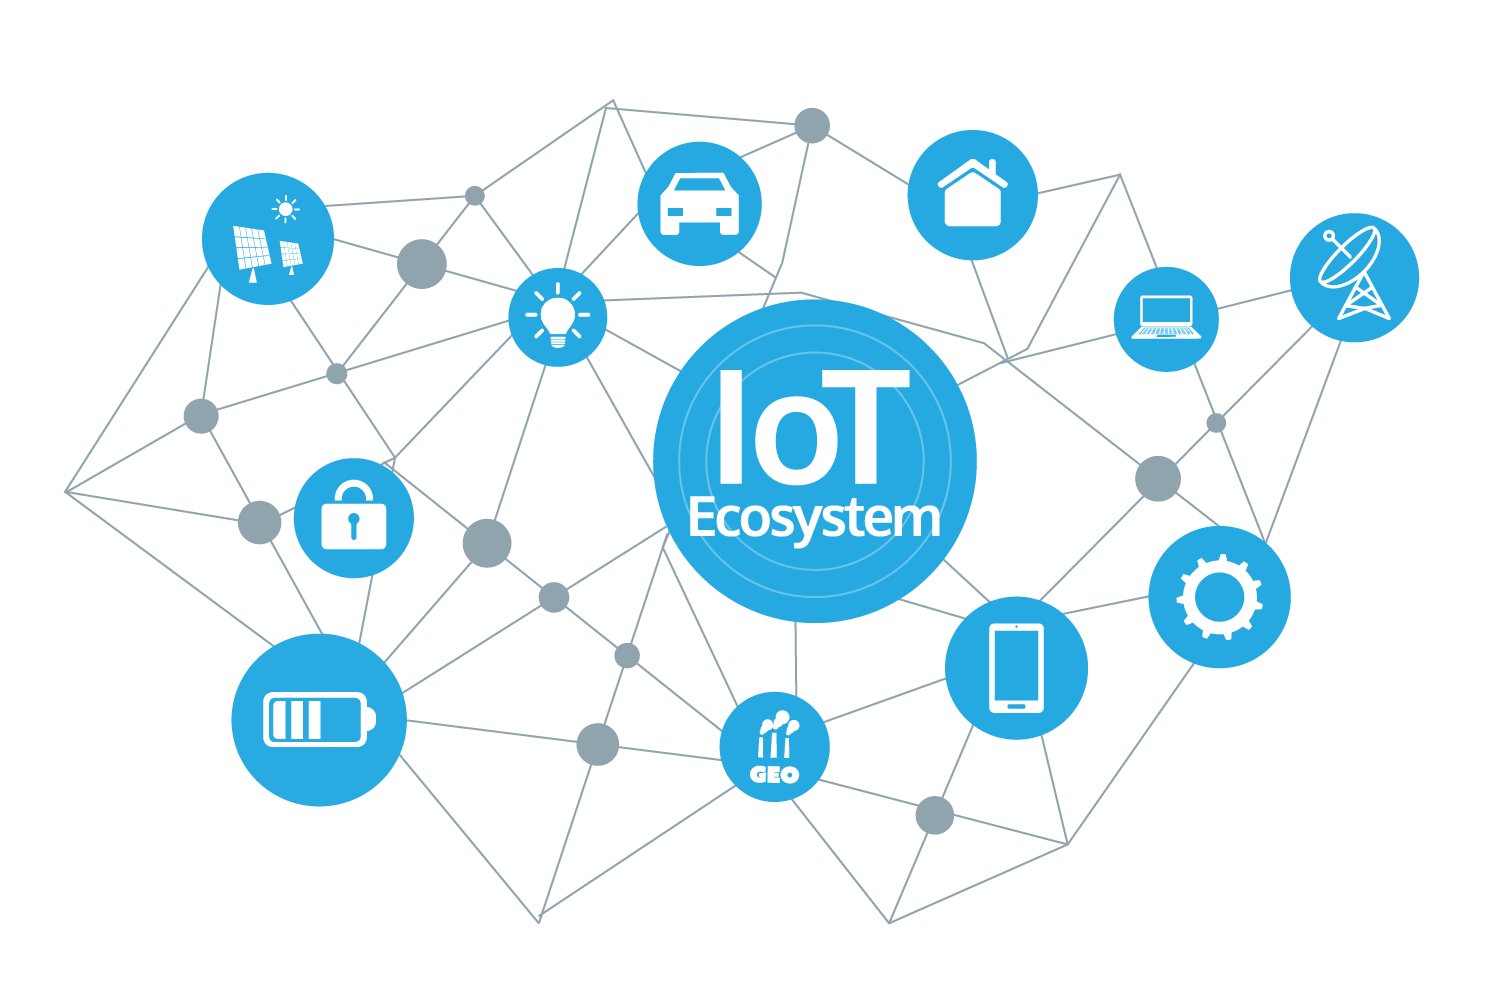 Become a true IoT Expert